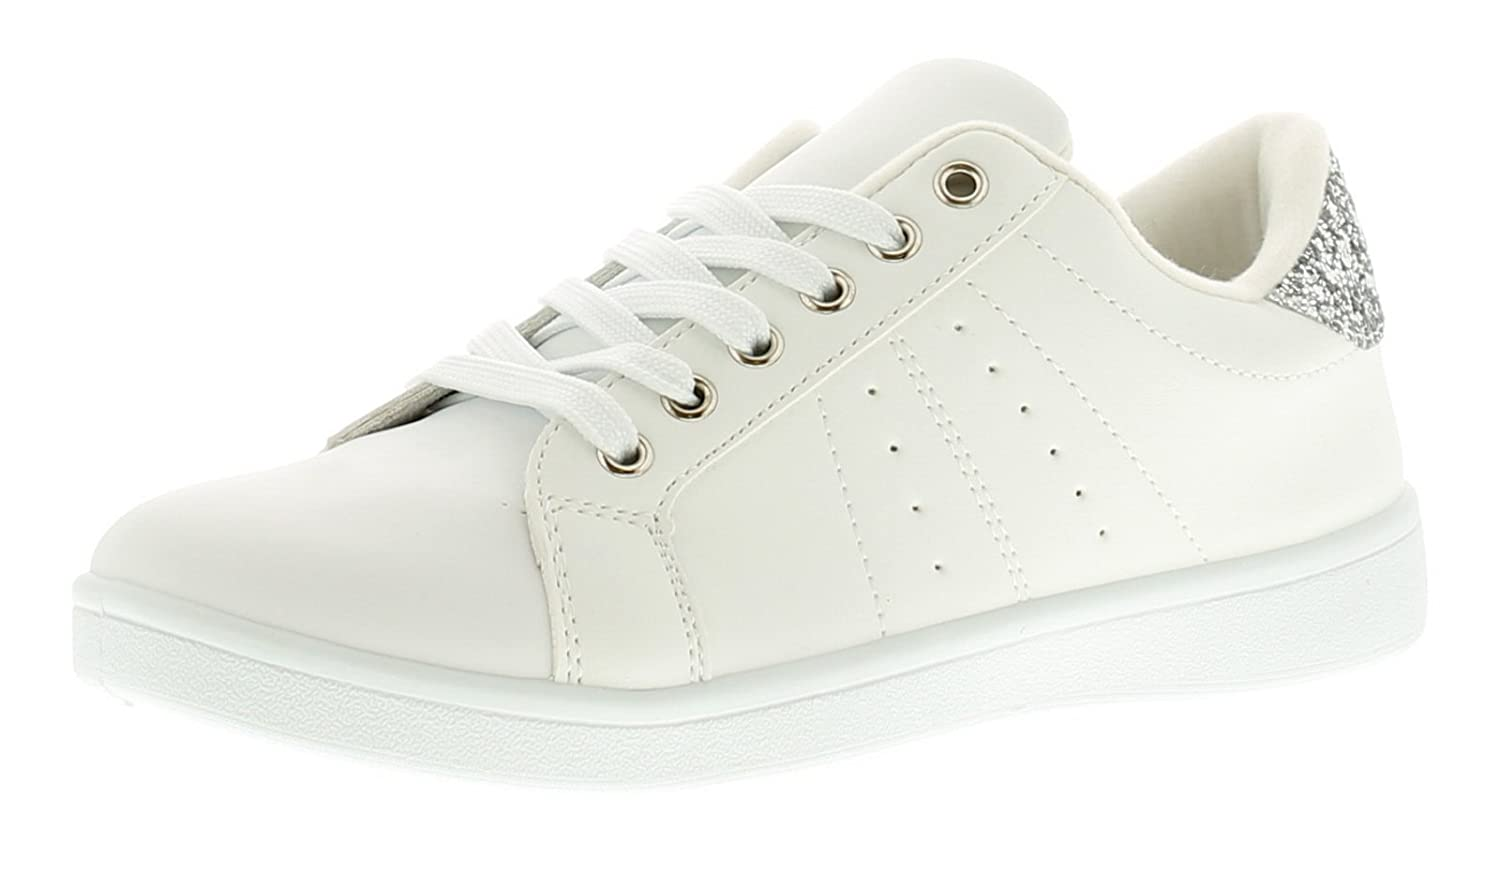 2d77a87a8aad8 Apache Ladies/Womens Synthetic Leather Look Fashion Trainers with Glitter -  White/Sillver - UK Size 8: Amazon.co.uk: Shoes & Bags